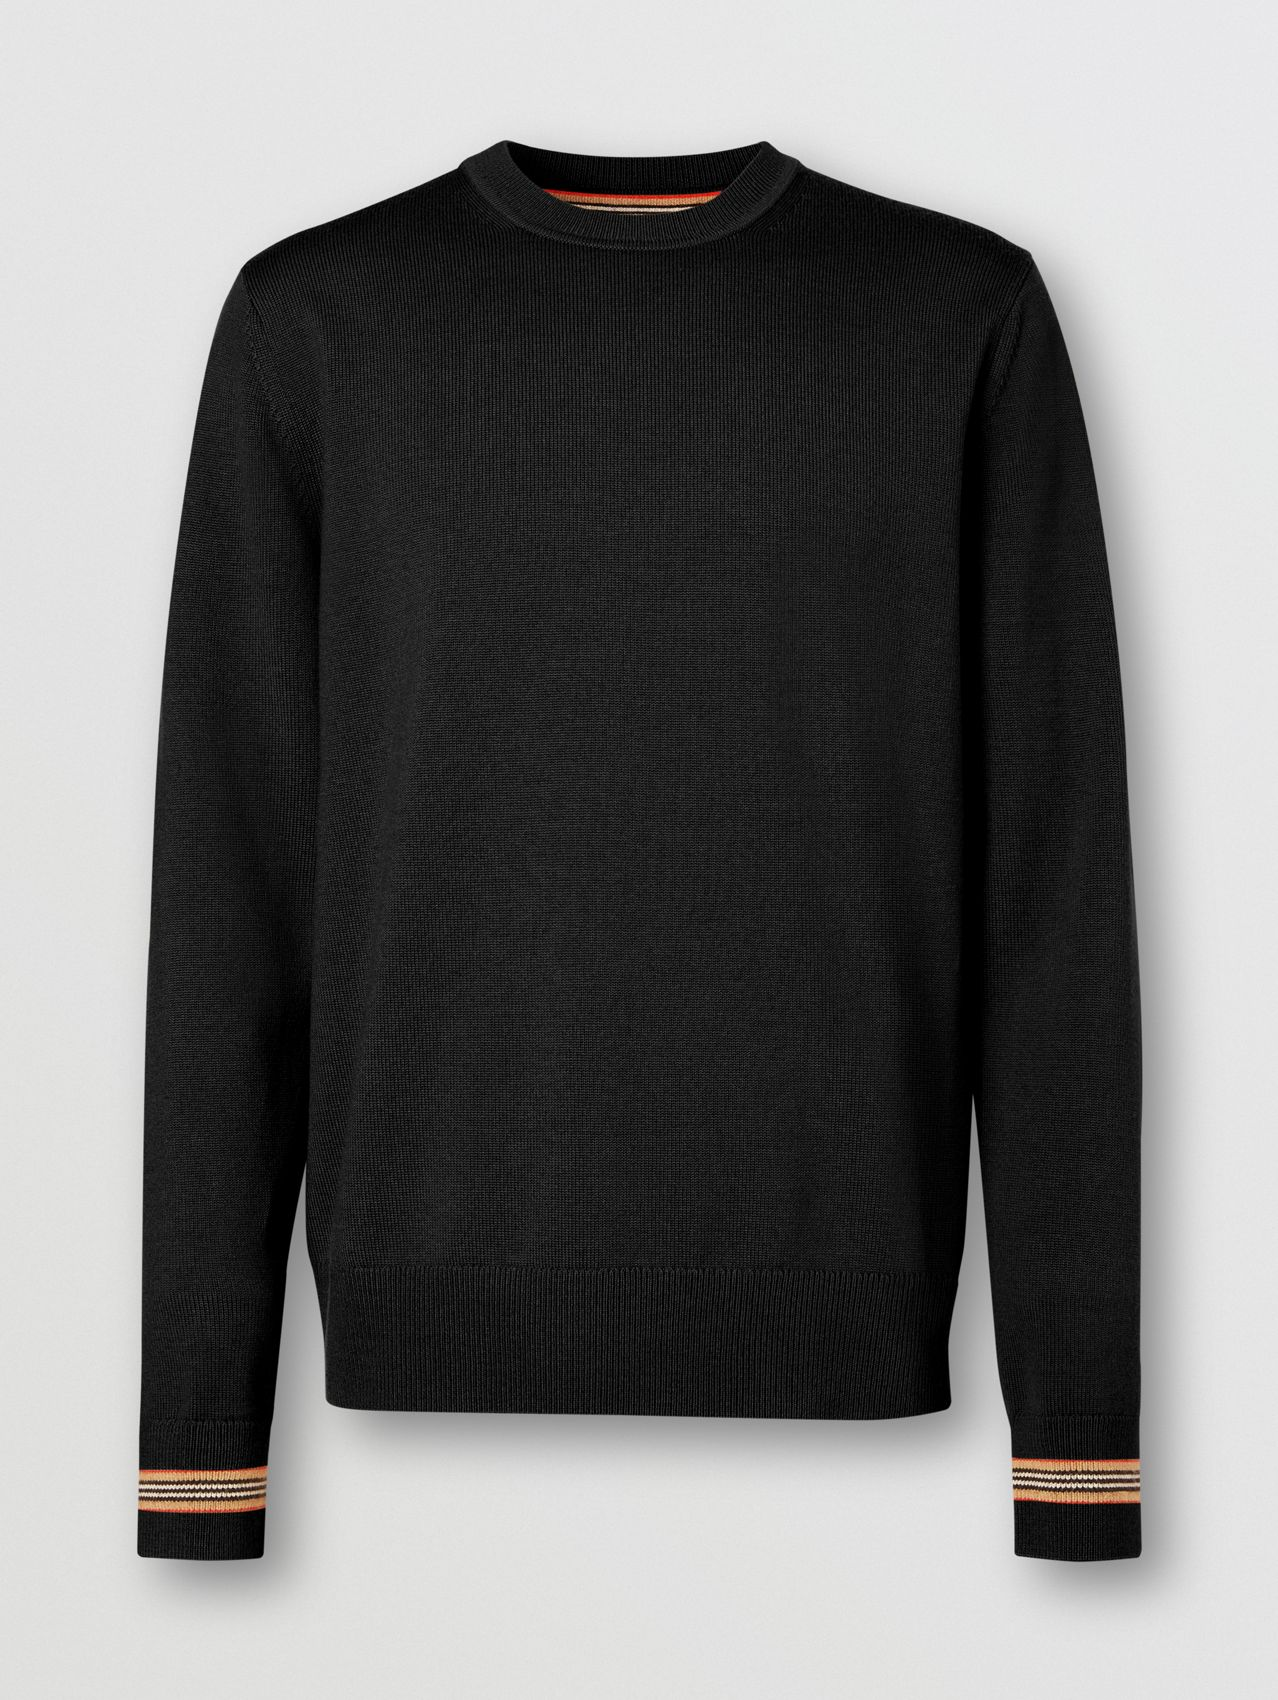 Icon Stripe Trim Merino Wool Sweater in Black